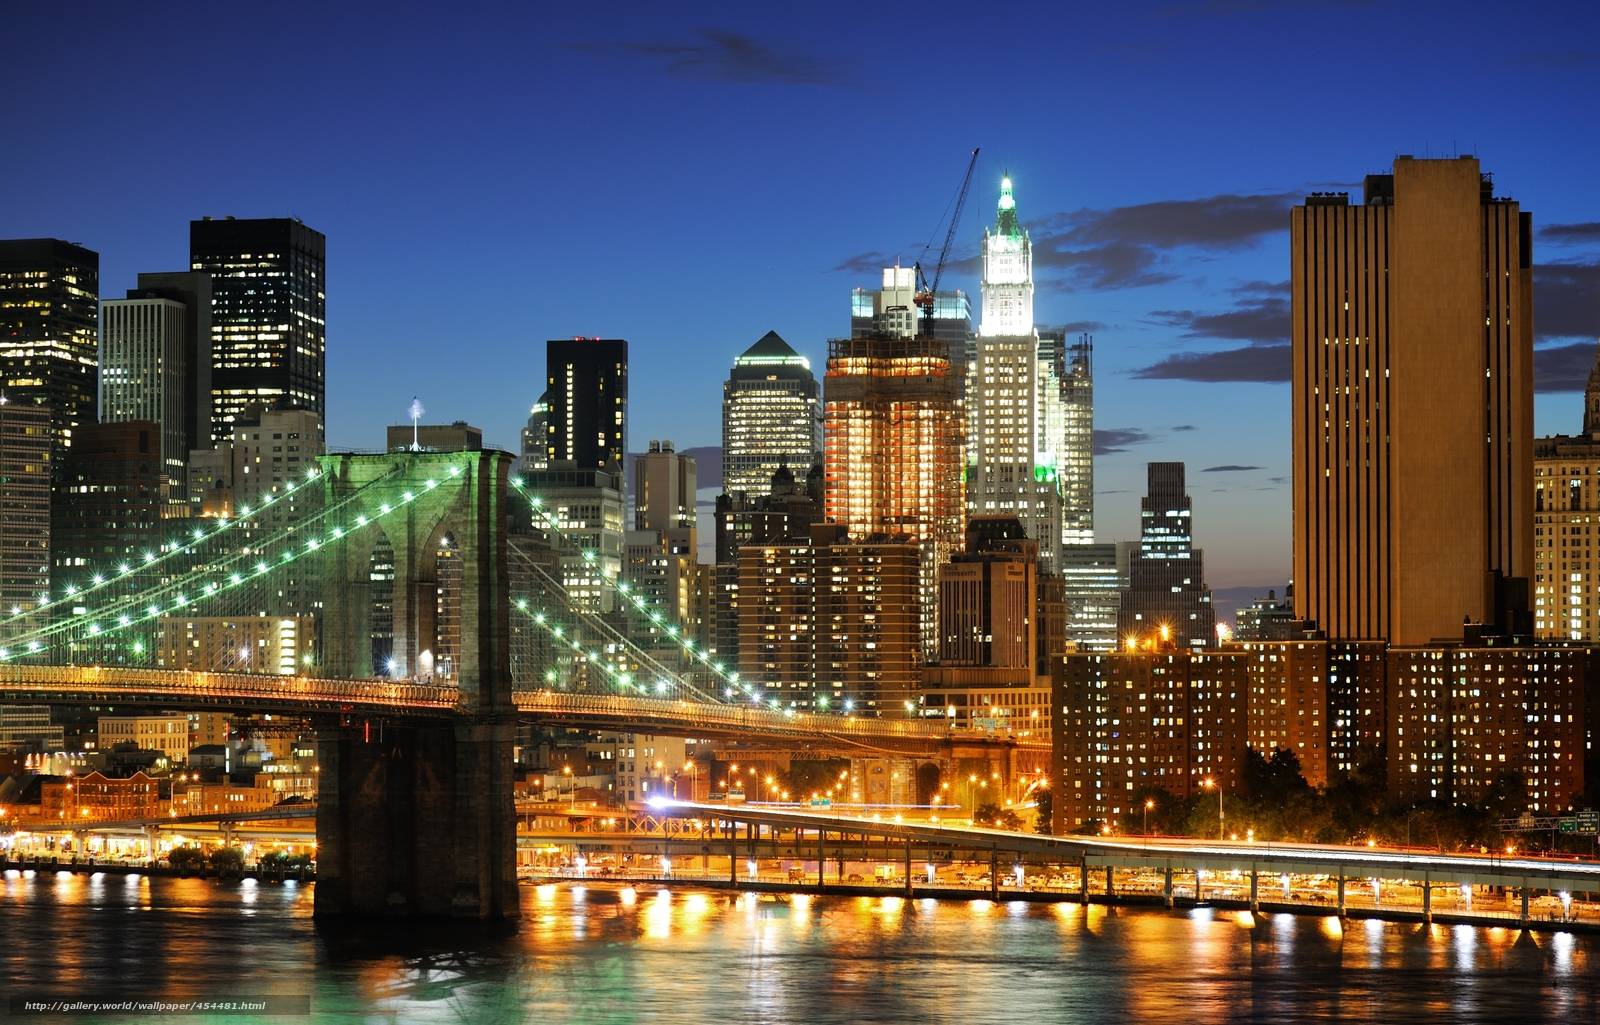 Download Wallpaper New York City  Nyc  USA  New York Free Desktop